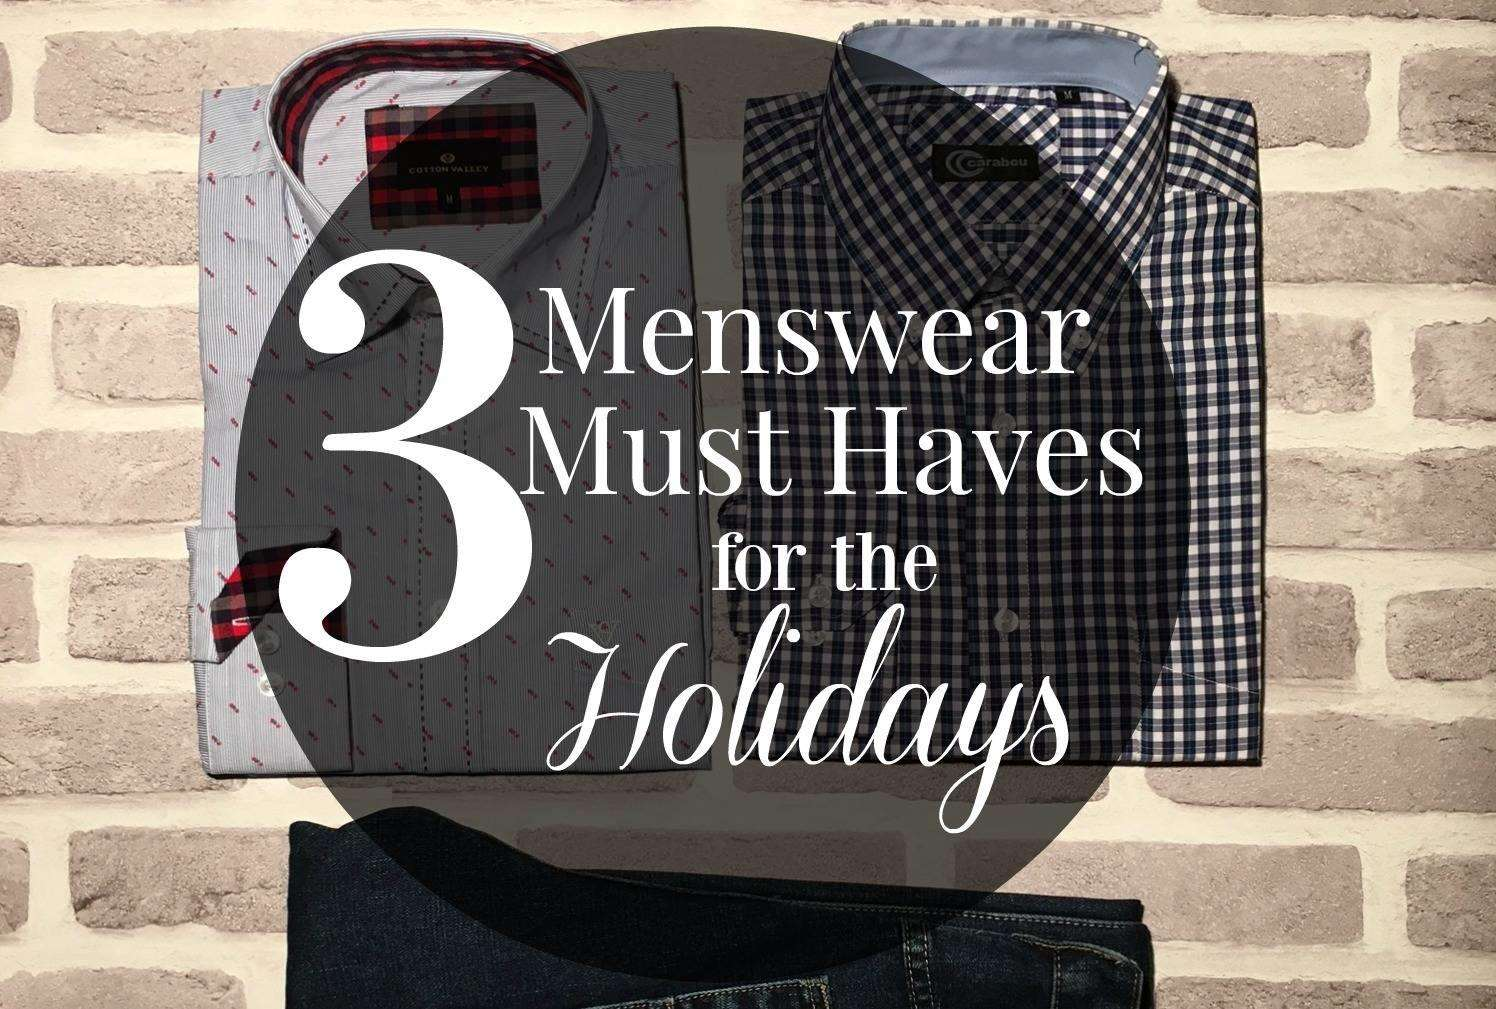 3 Menswear Must Haves for the Holidays + 20% Discount Code!, Menswear must haves FT%, lifestyle%